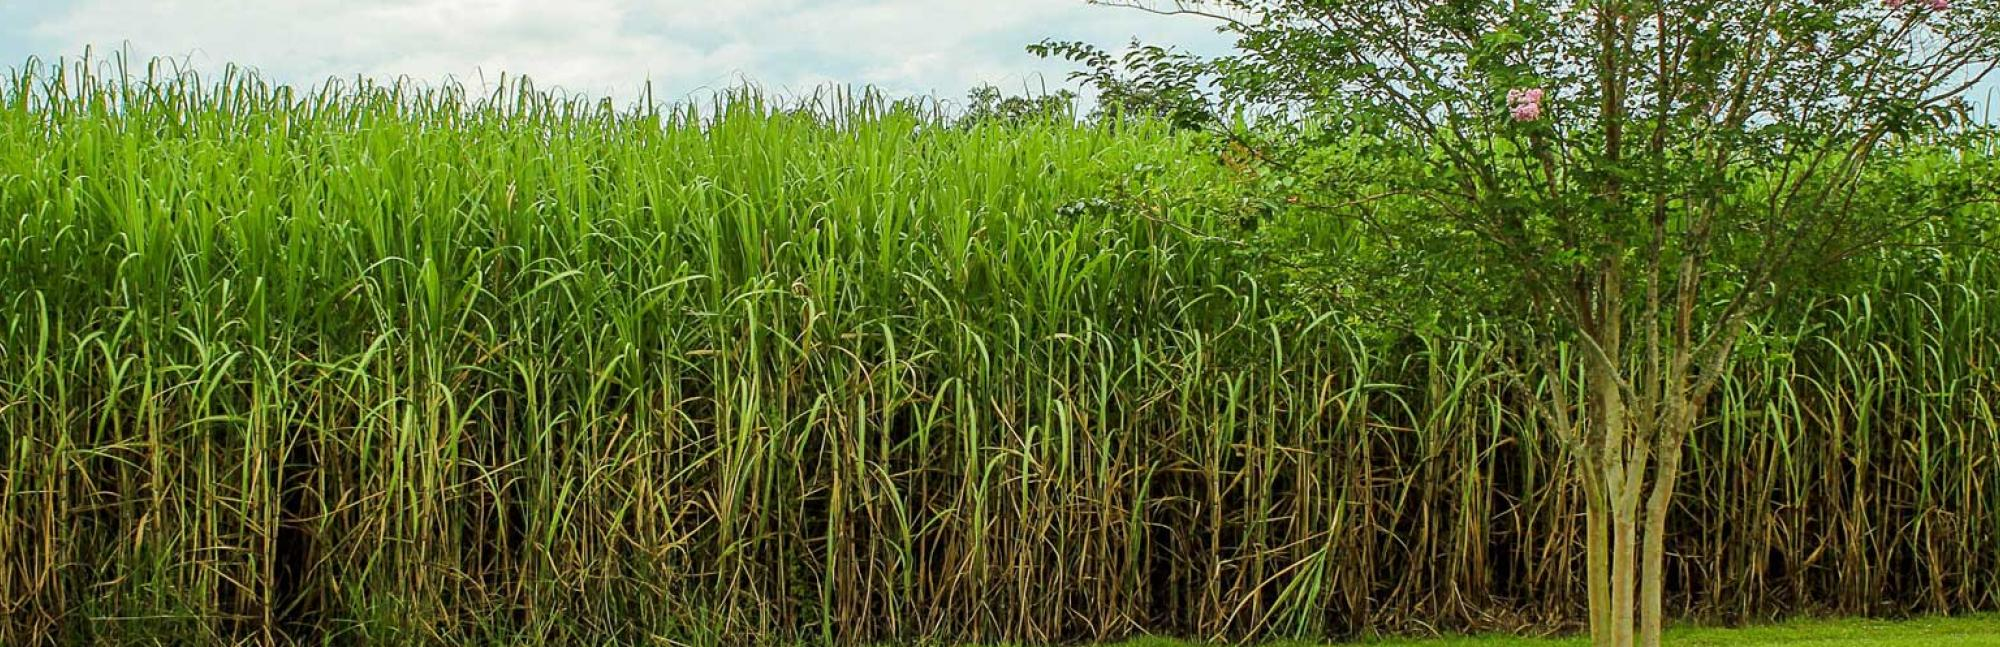 Sugar canes in farmed field